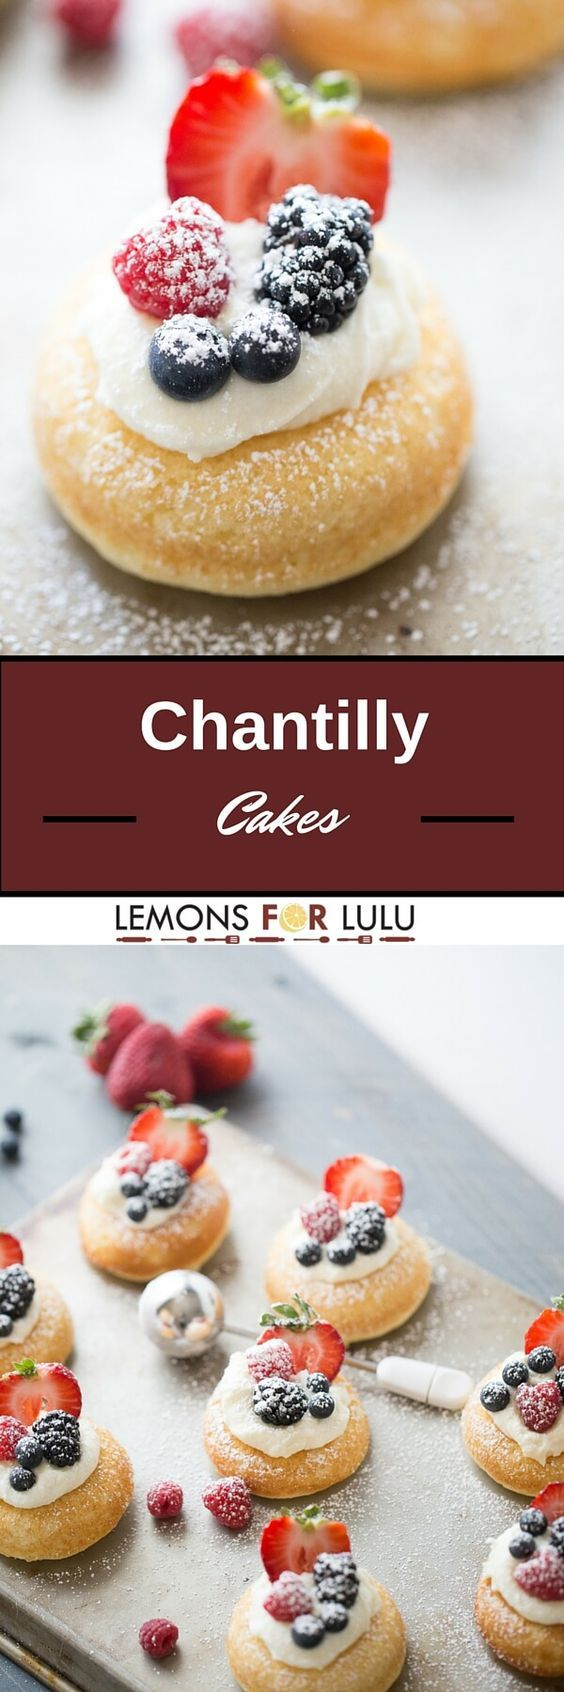 Chantilly cake is a layer cake with a mascarpone topping and fresh fruit.  These cakes have the same flavor, but are so much easier to prepare!